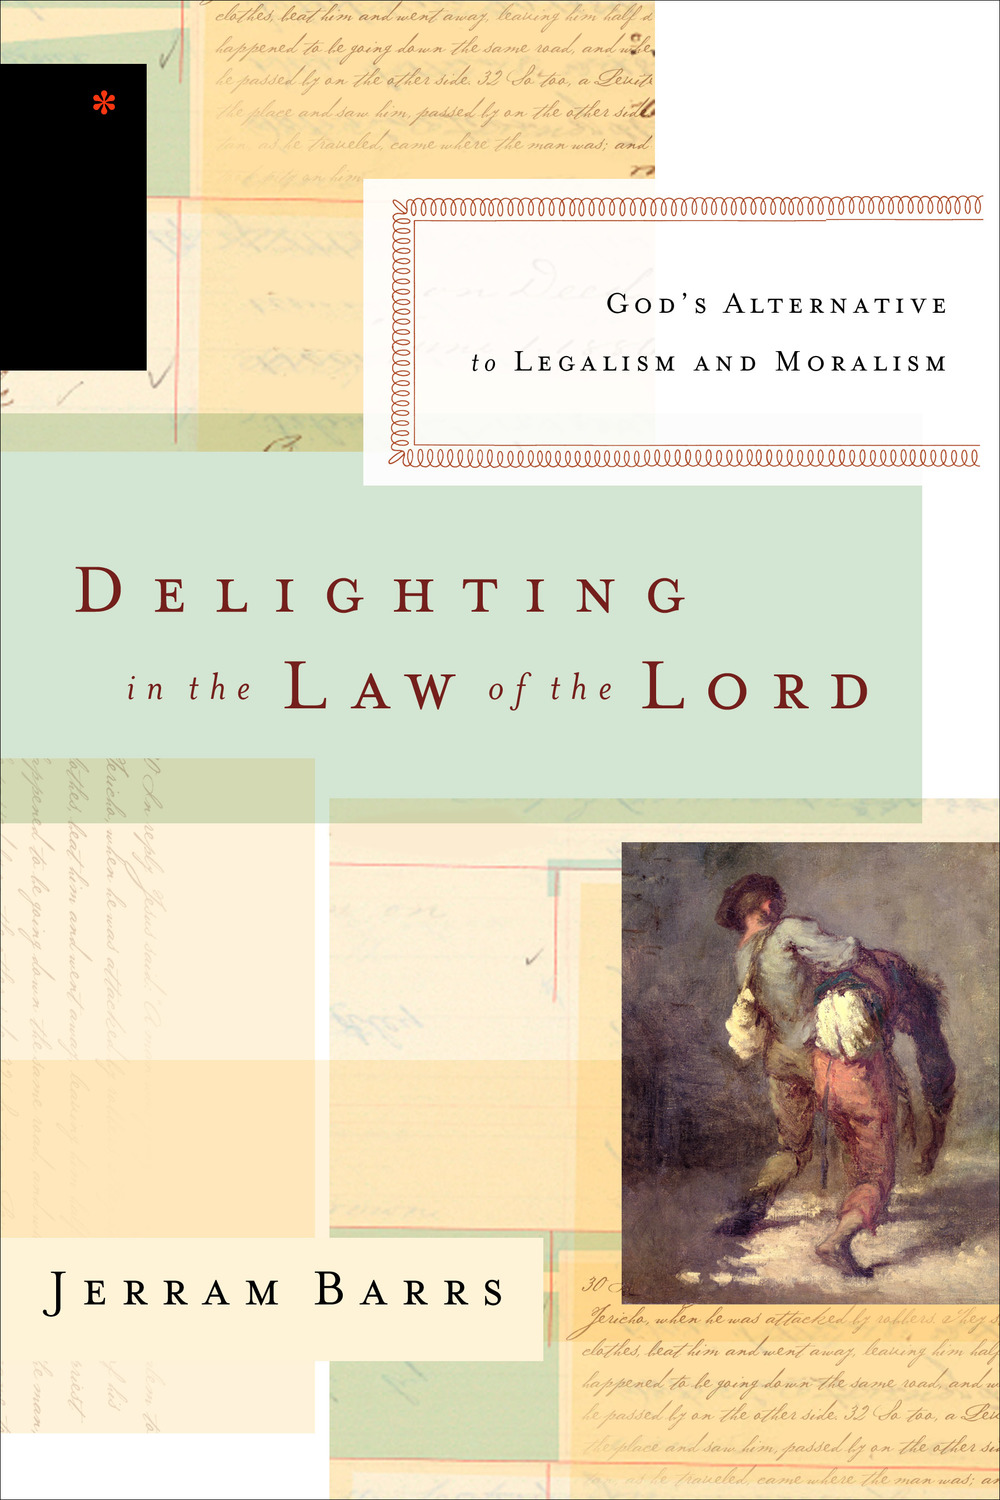 Delighting in the Law of the Lord